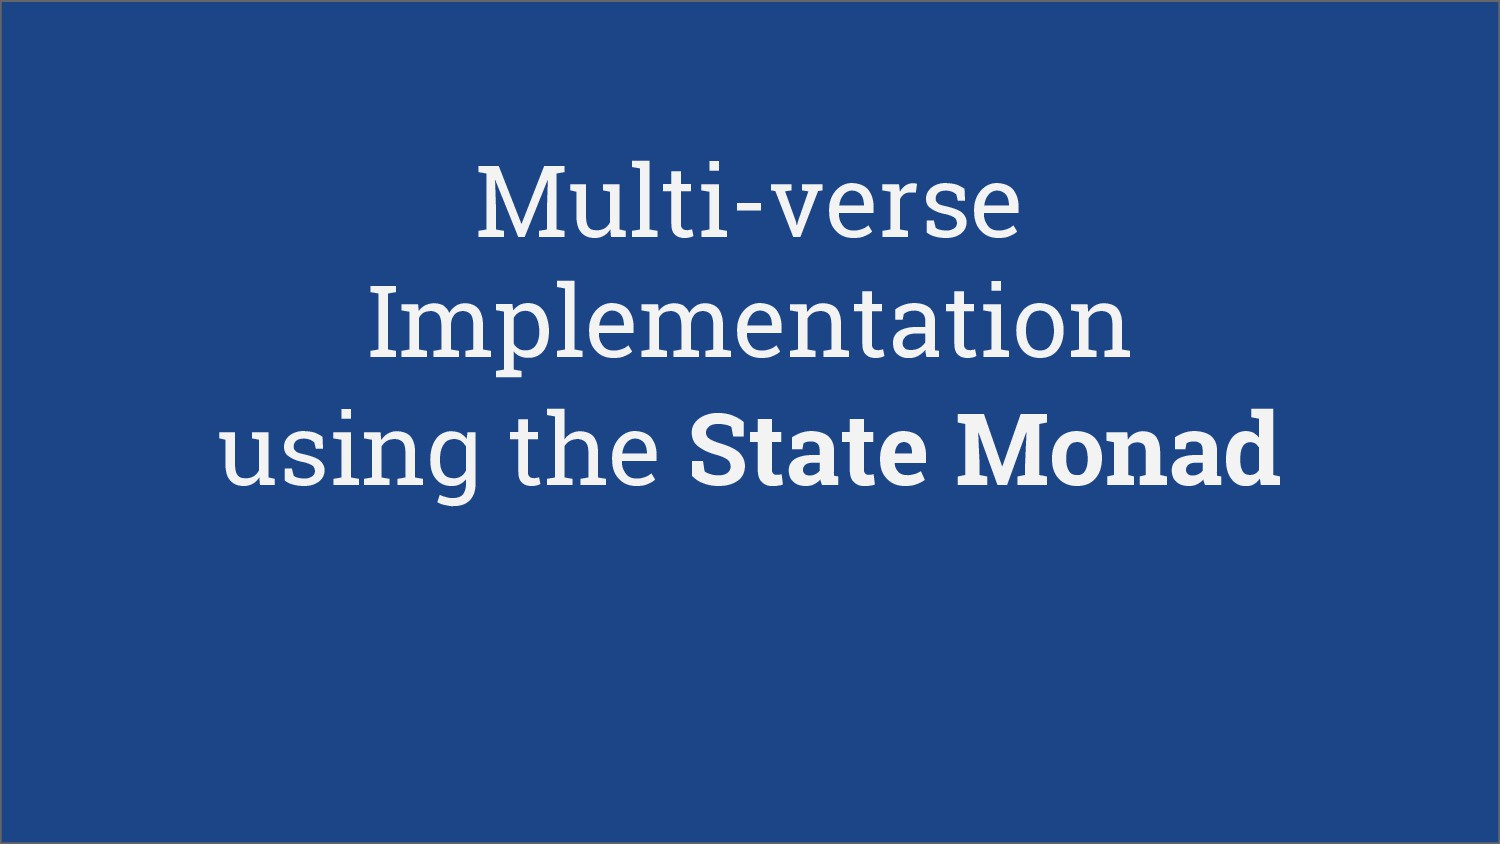 Multi-verse Implementation using the State Monad